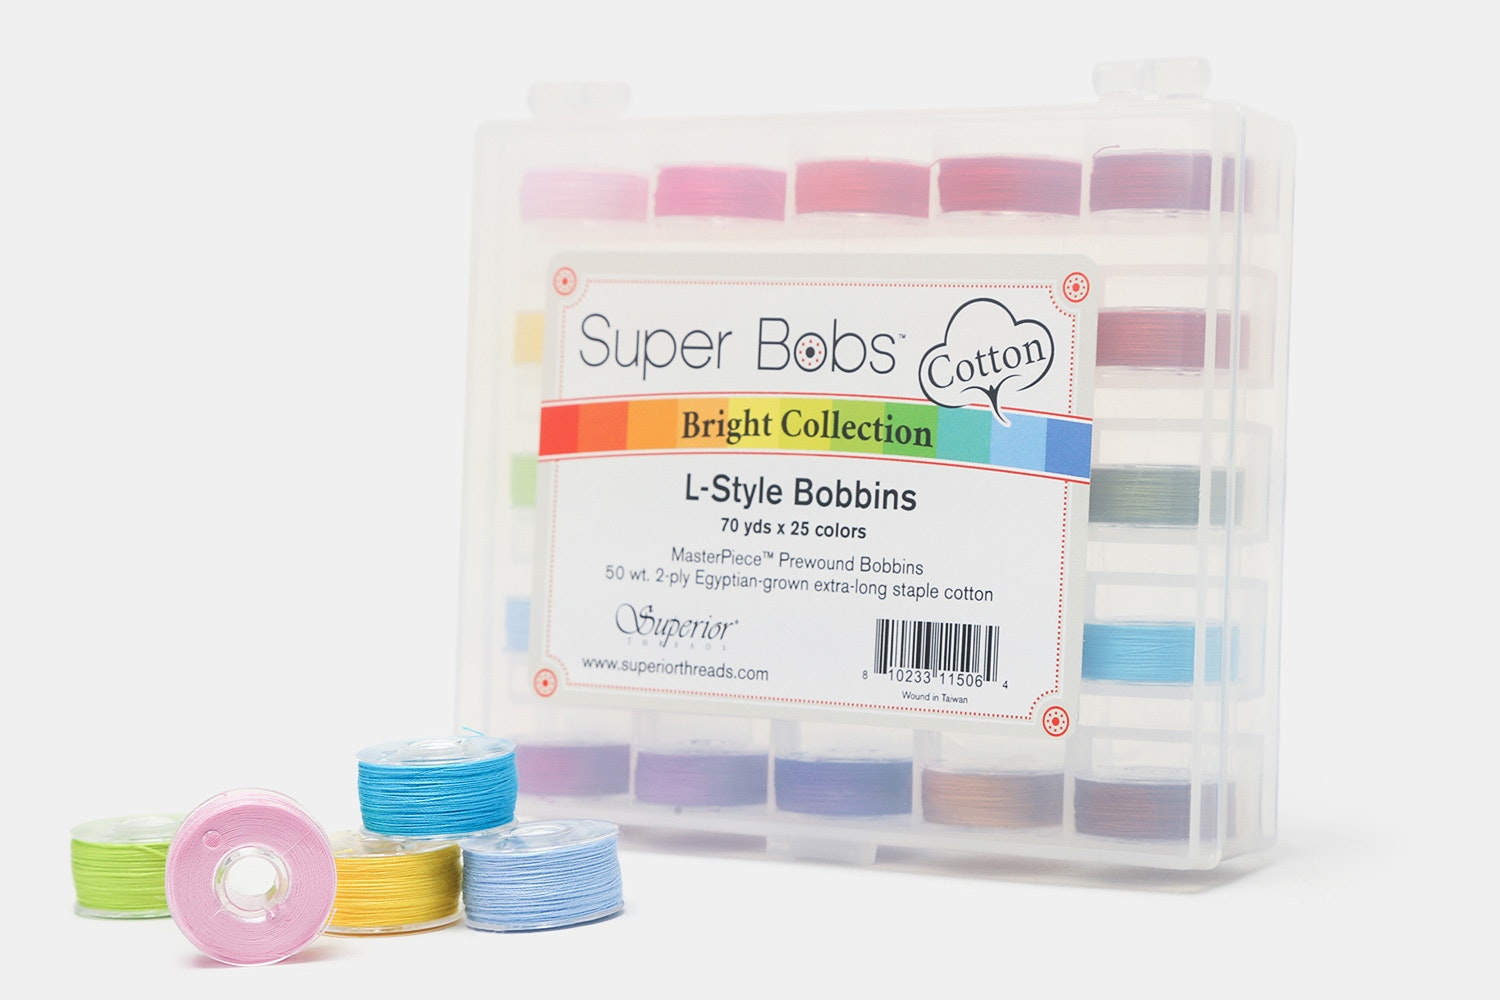 Super Bobs Cotton Prewound Bobbin Set